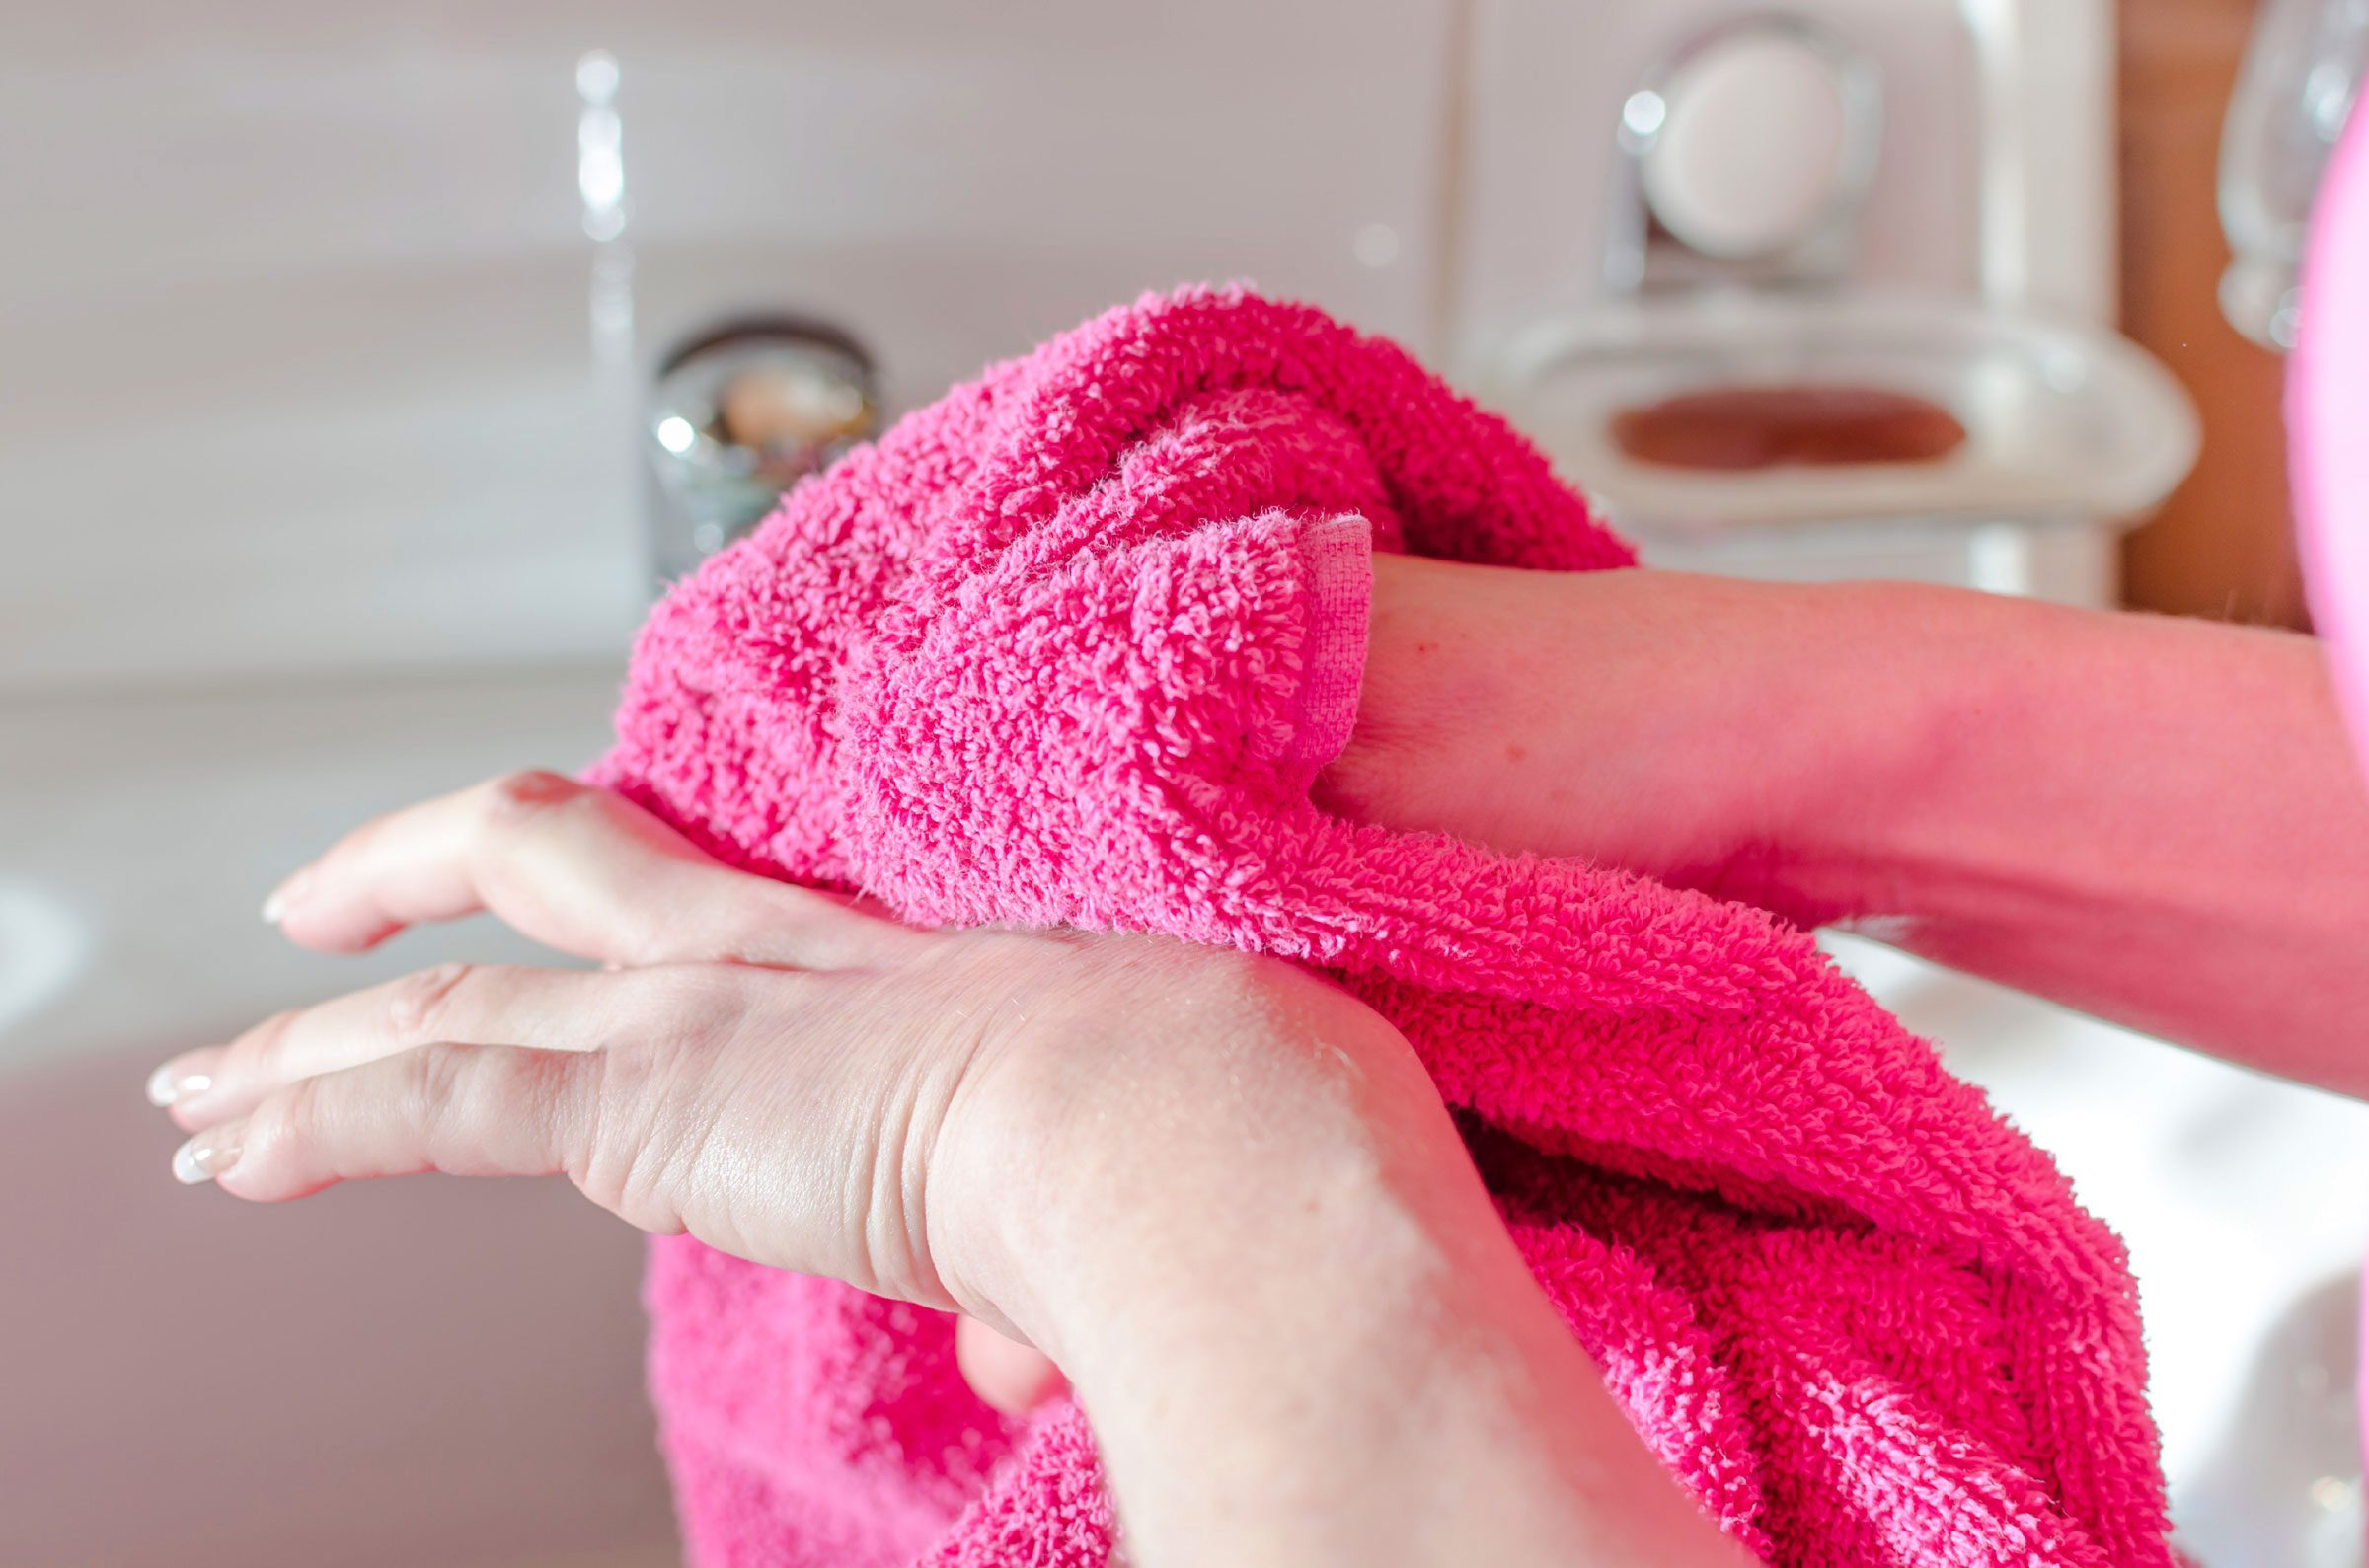 hand washing mistakes drying